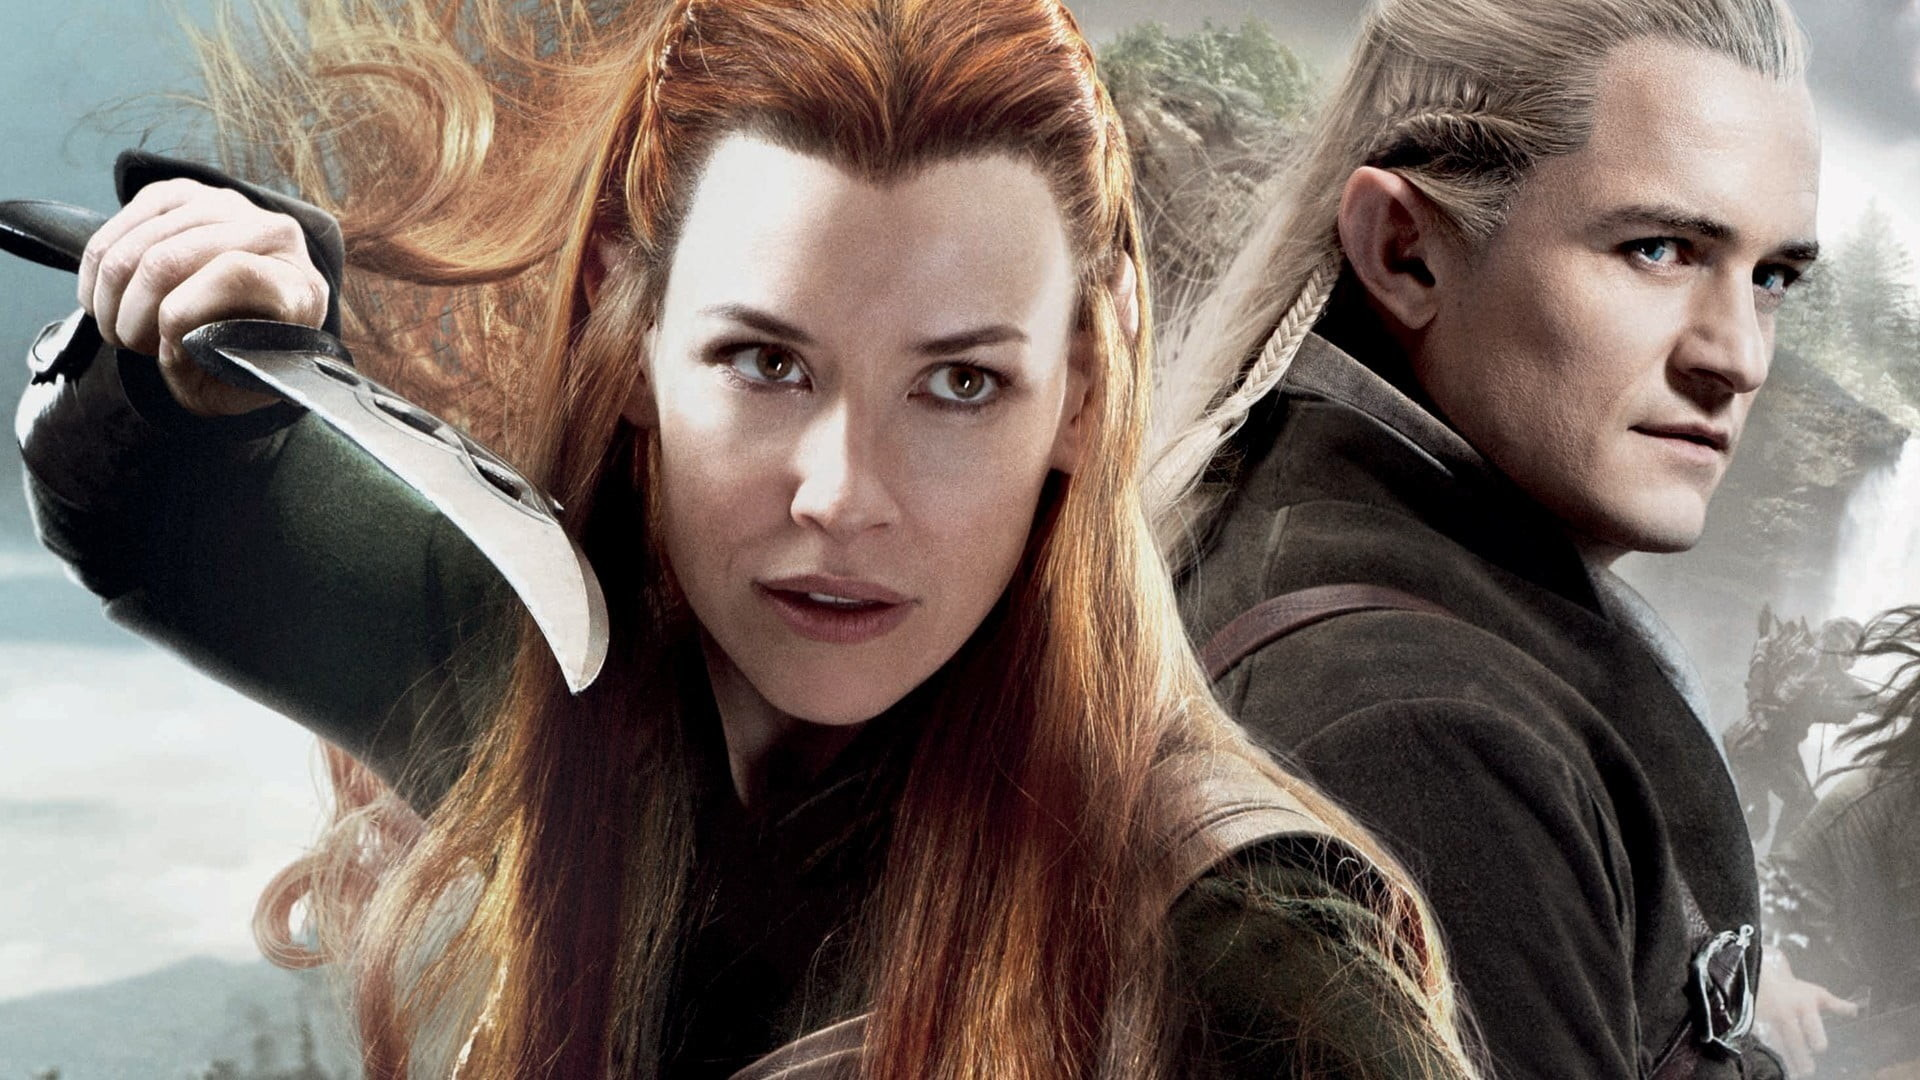 1920x1080 Legolas and Tauriel, Orlando Bloom, The Hobbit, Evangeline Lilly